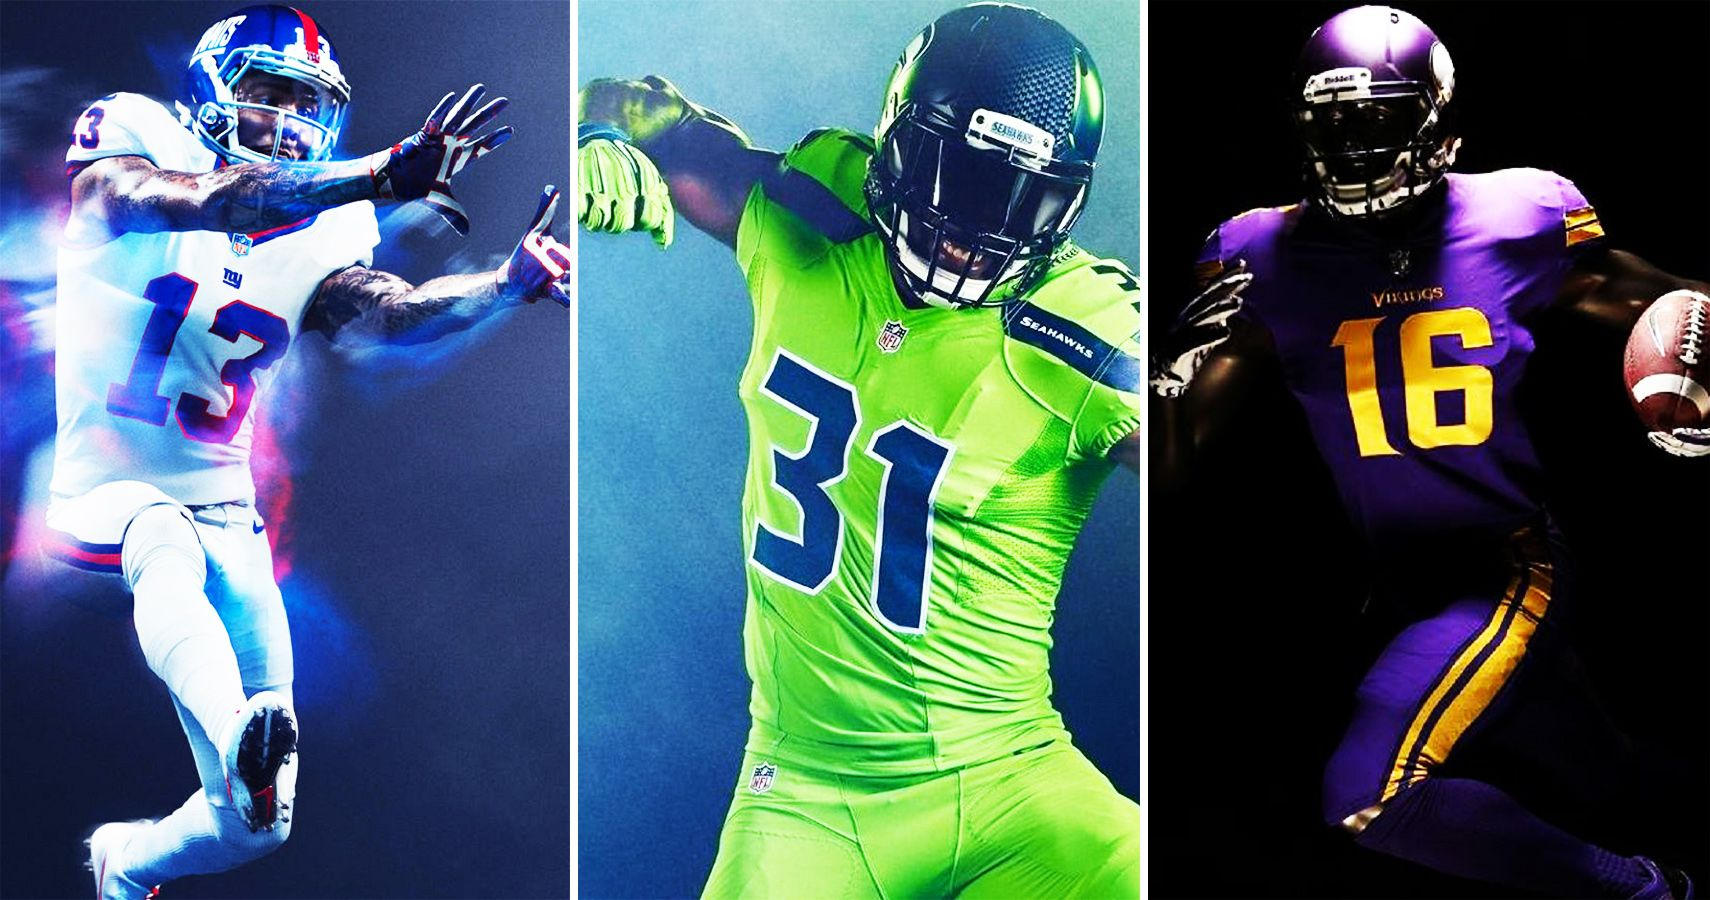 b8c02638d Ranking All 32 NFL Color Rush Uniforms